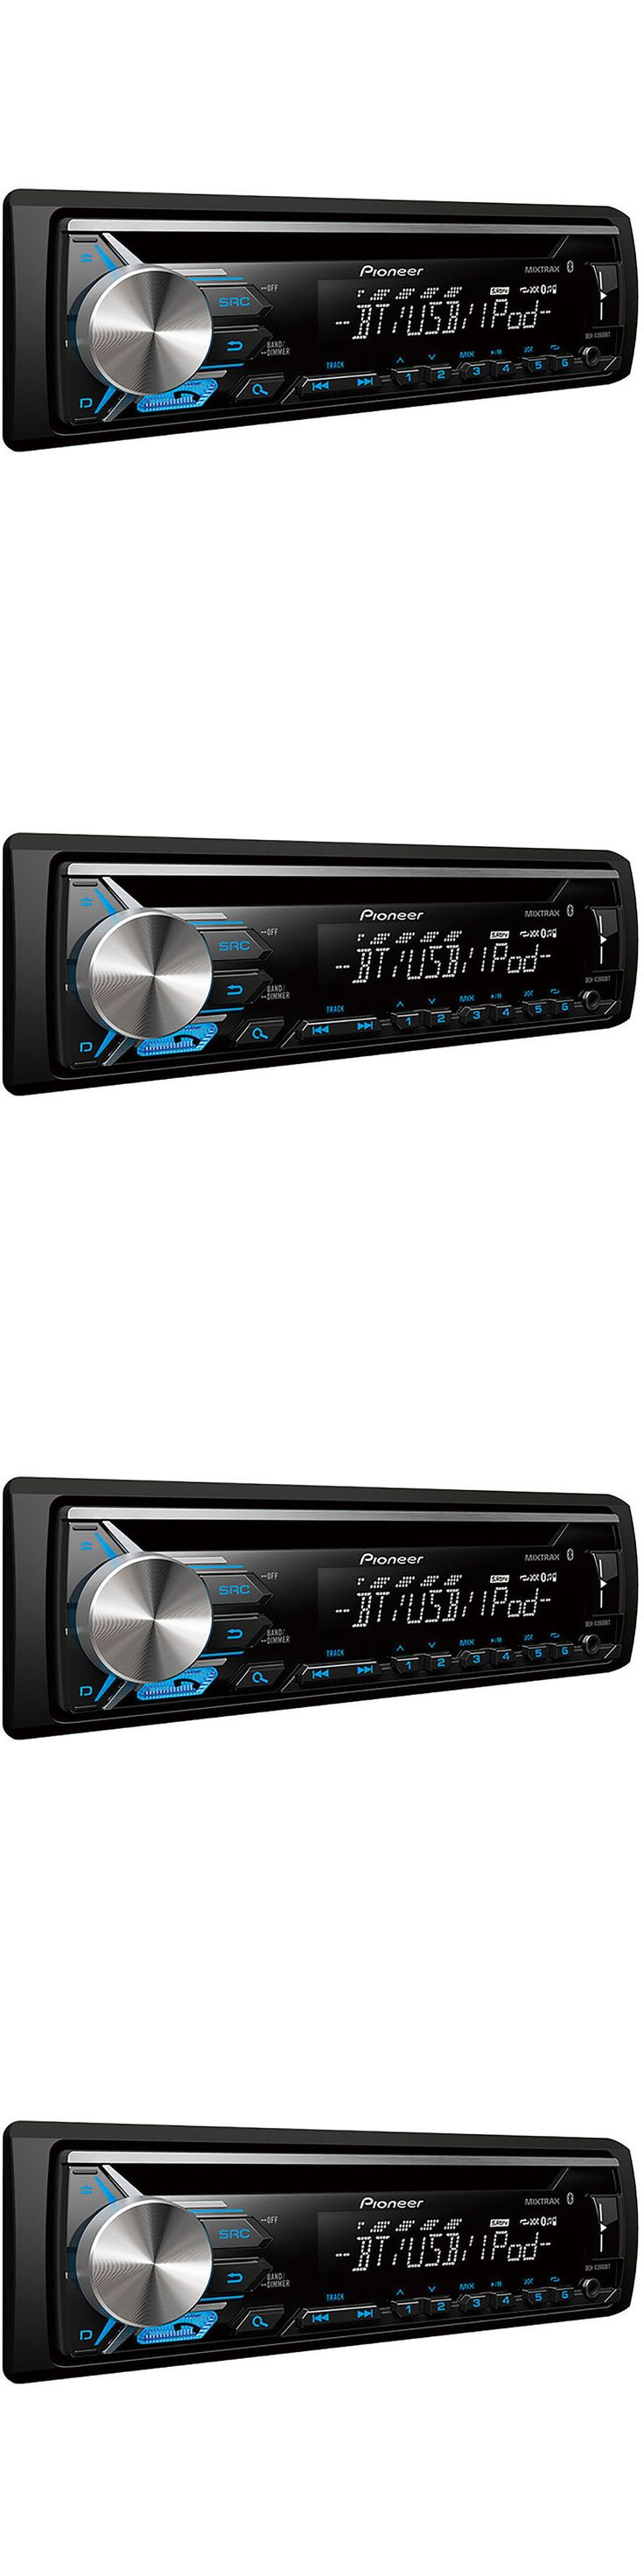 Car audio in dash units pioneer deh x3900bt single din car stereo cd